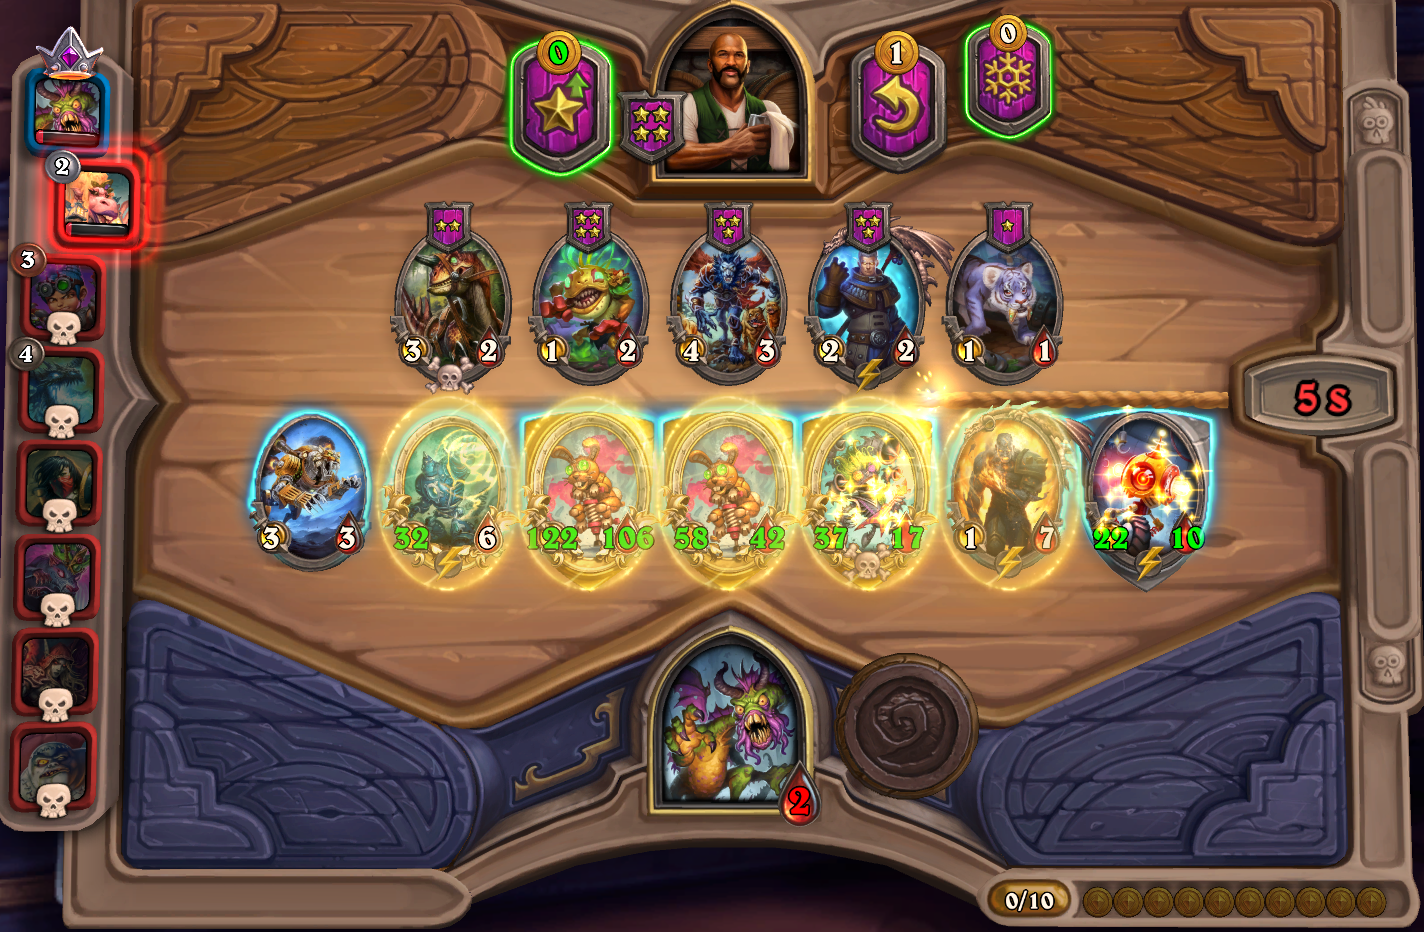 http://zokoi.free.fr/image/Hearthstone/Lapins.png